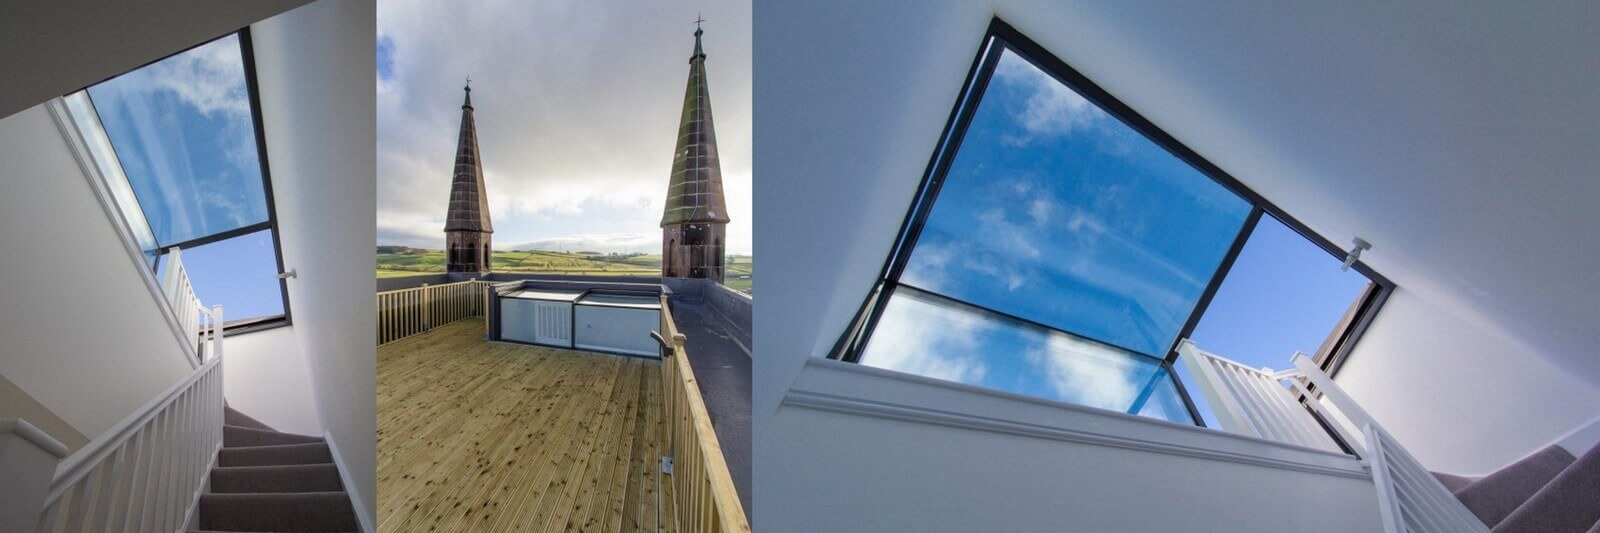 Innovative box rooflight for luxury apartment